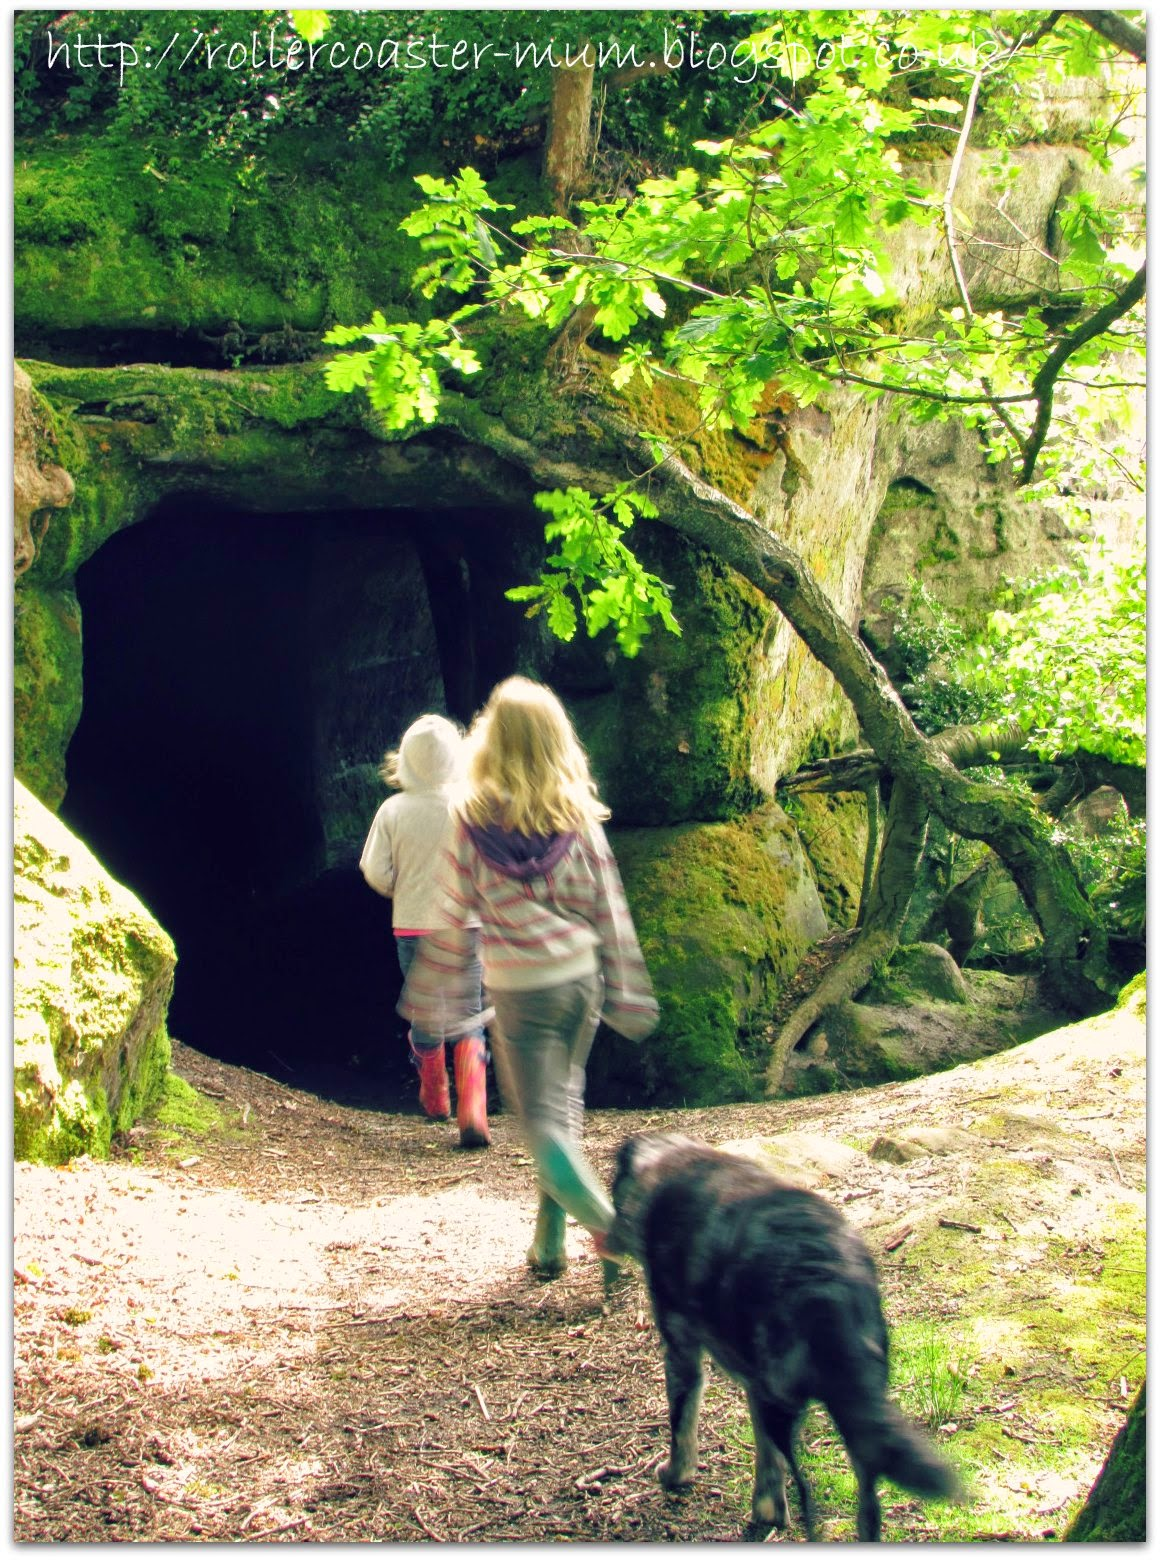 the tunnel, Lake Wood, Woodland Trust